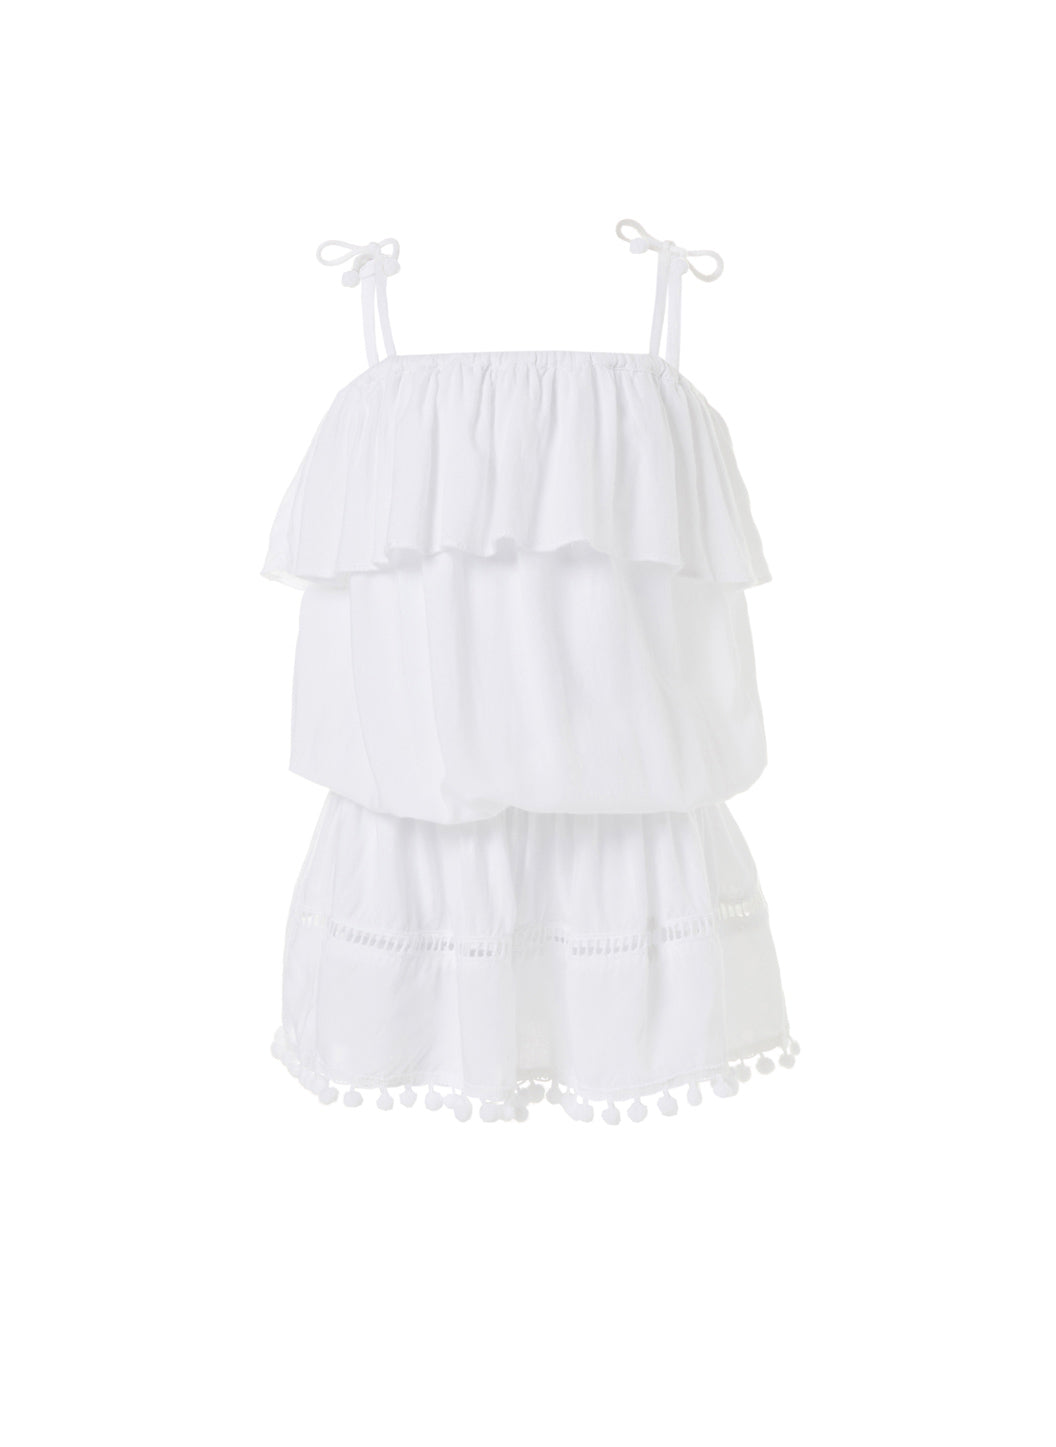 Baby Joy White Beach Dress - Melissa Odabash Kids Beach Dresses